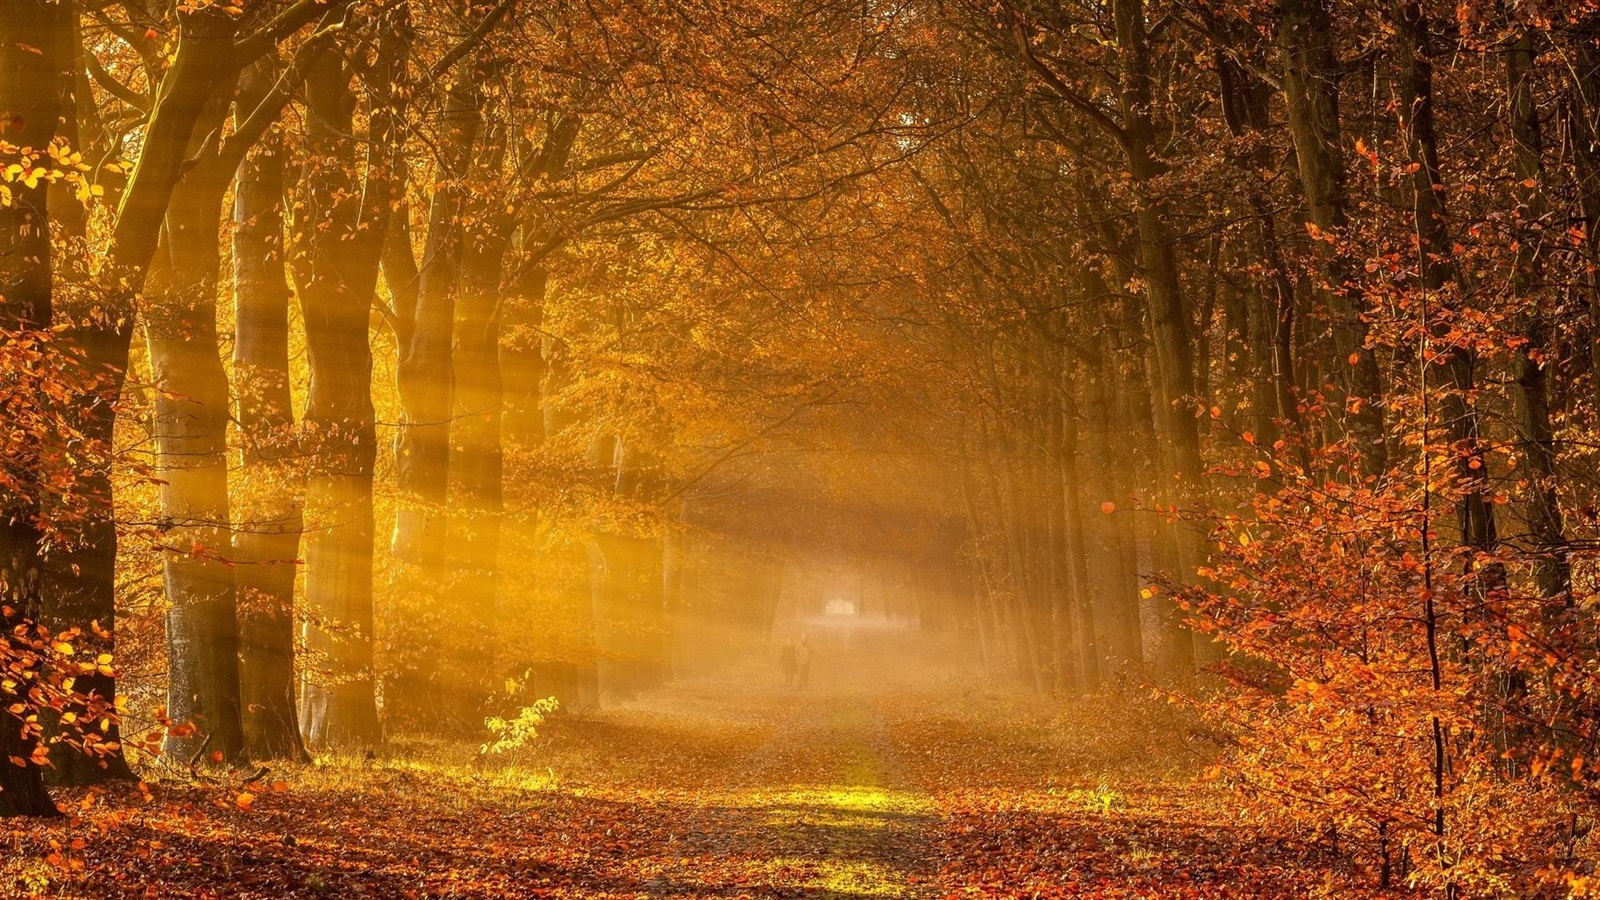 Trees, red leaves, road, people, sunlight, autumn 1600x900 wallpaper